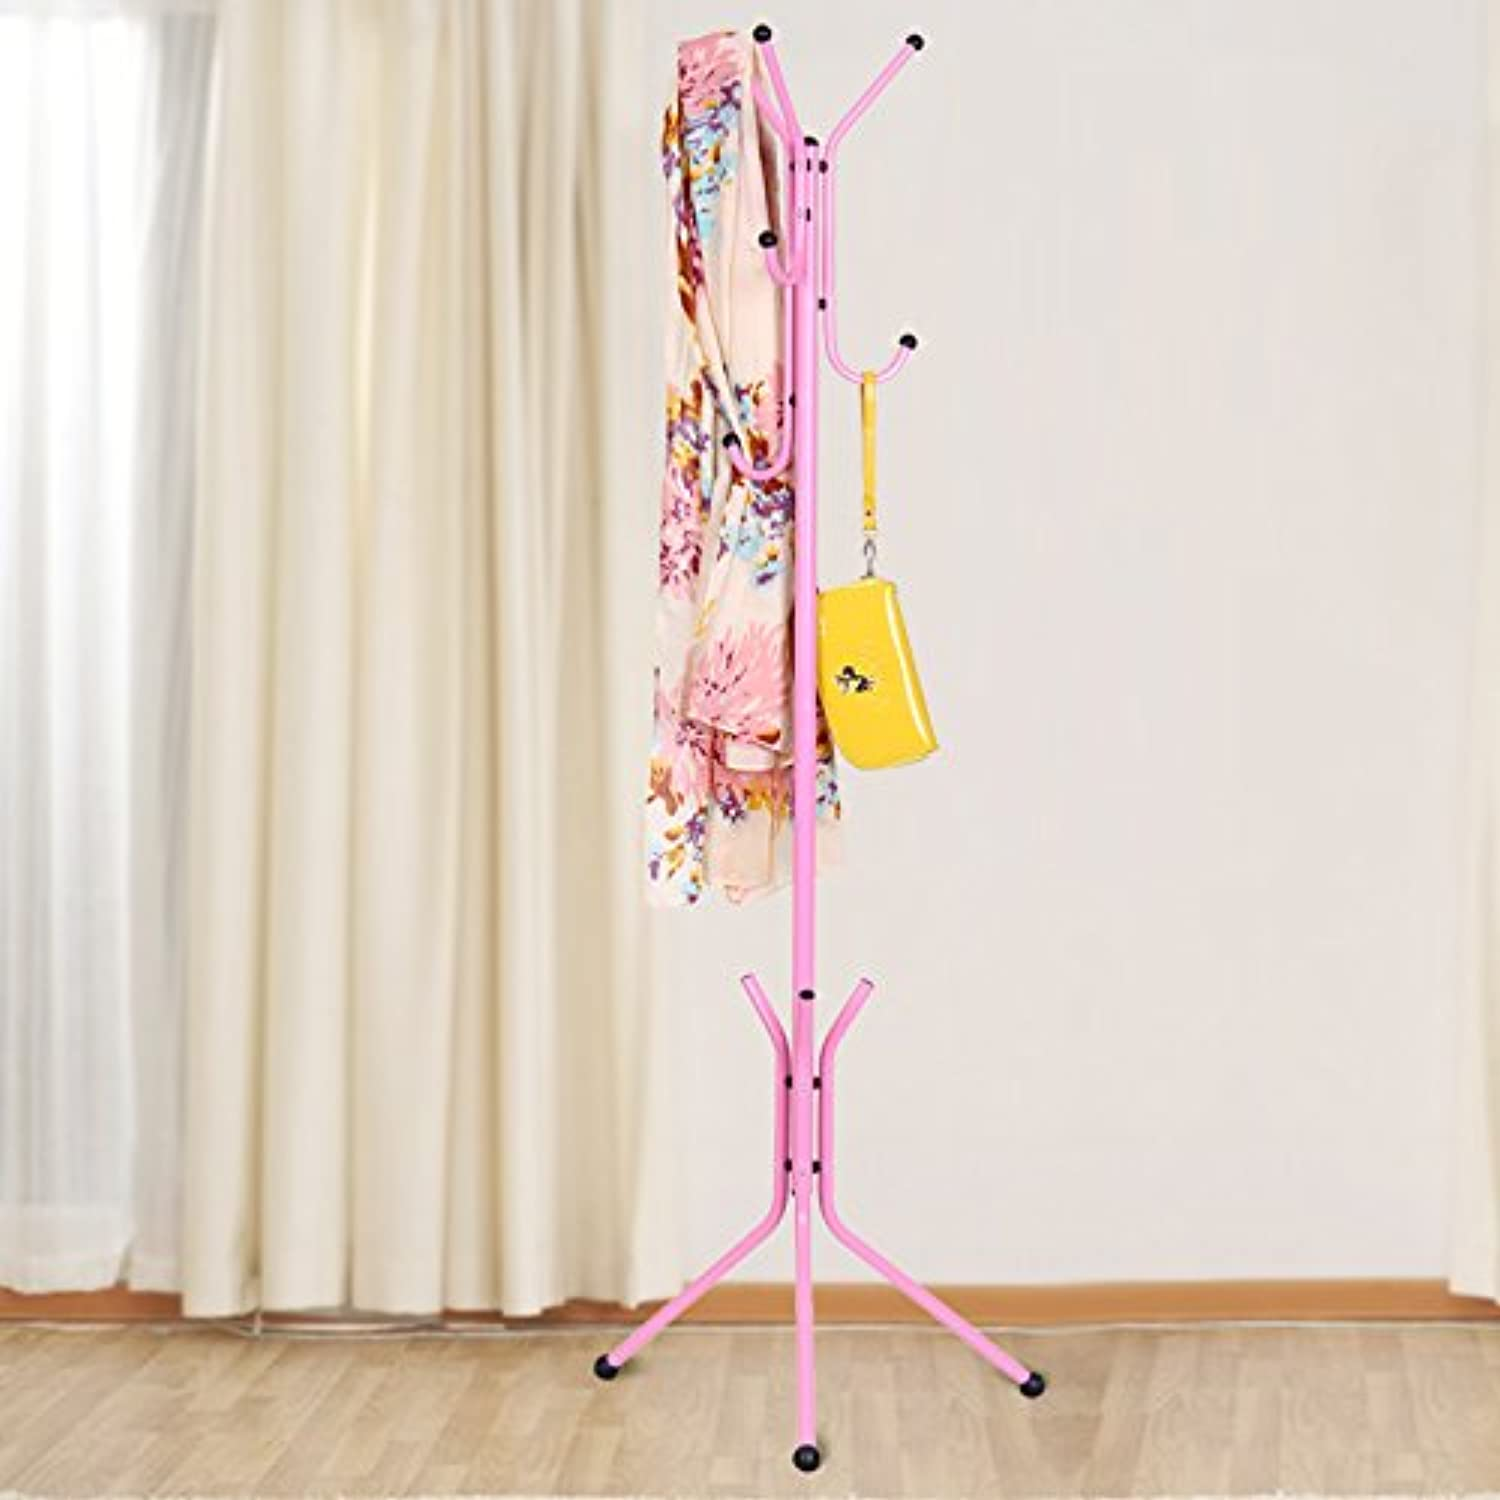 Bedroom Living Room Office Coat Rack Fashion Iron Floor Coat Rack Clothing Rack Home Triangular Hangers,Pink